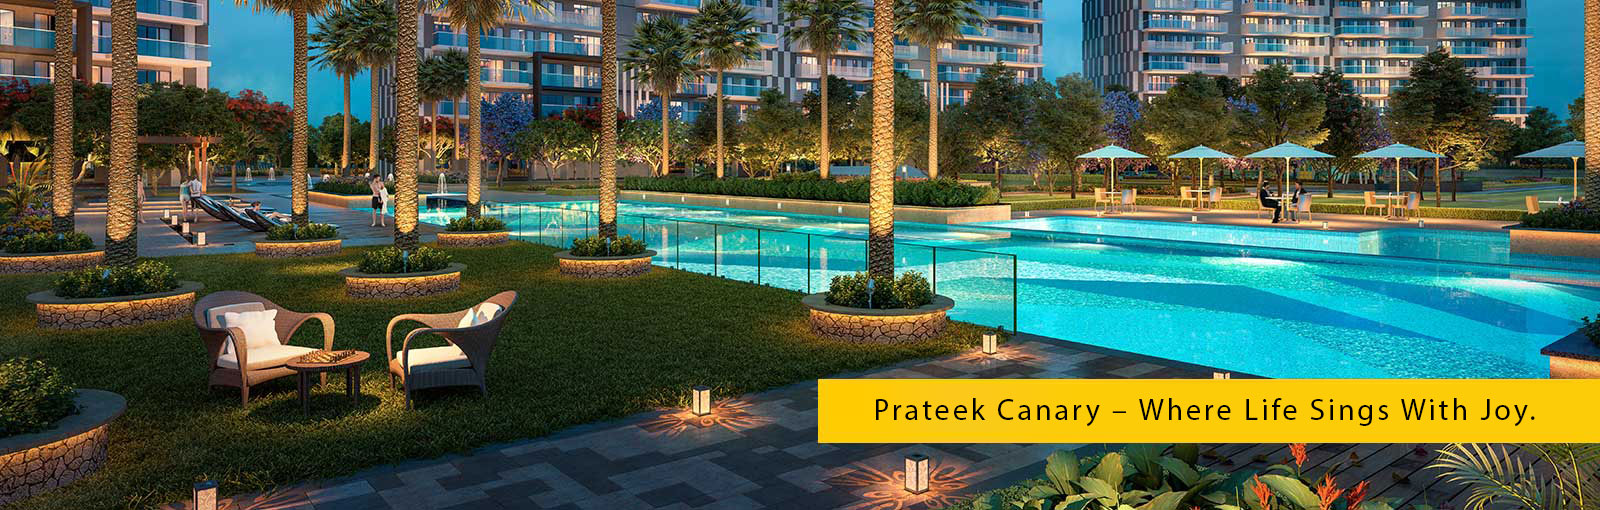 Pay 10 now EMI holiday for 3 years at Prateek Canary Noida Photo